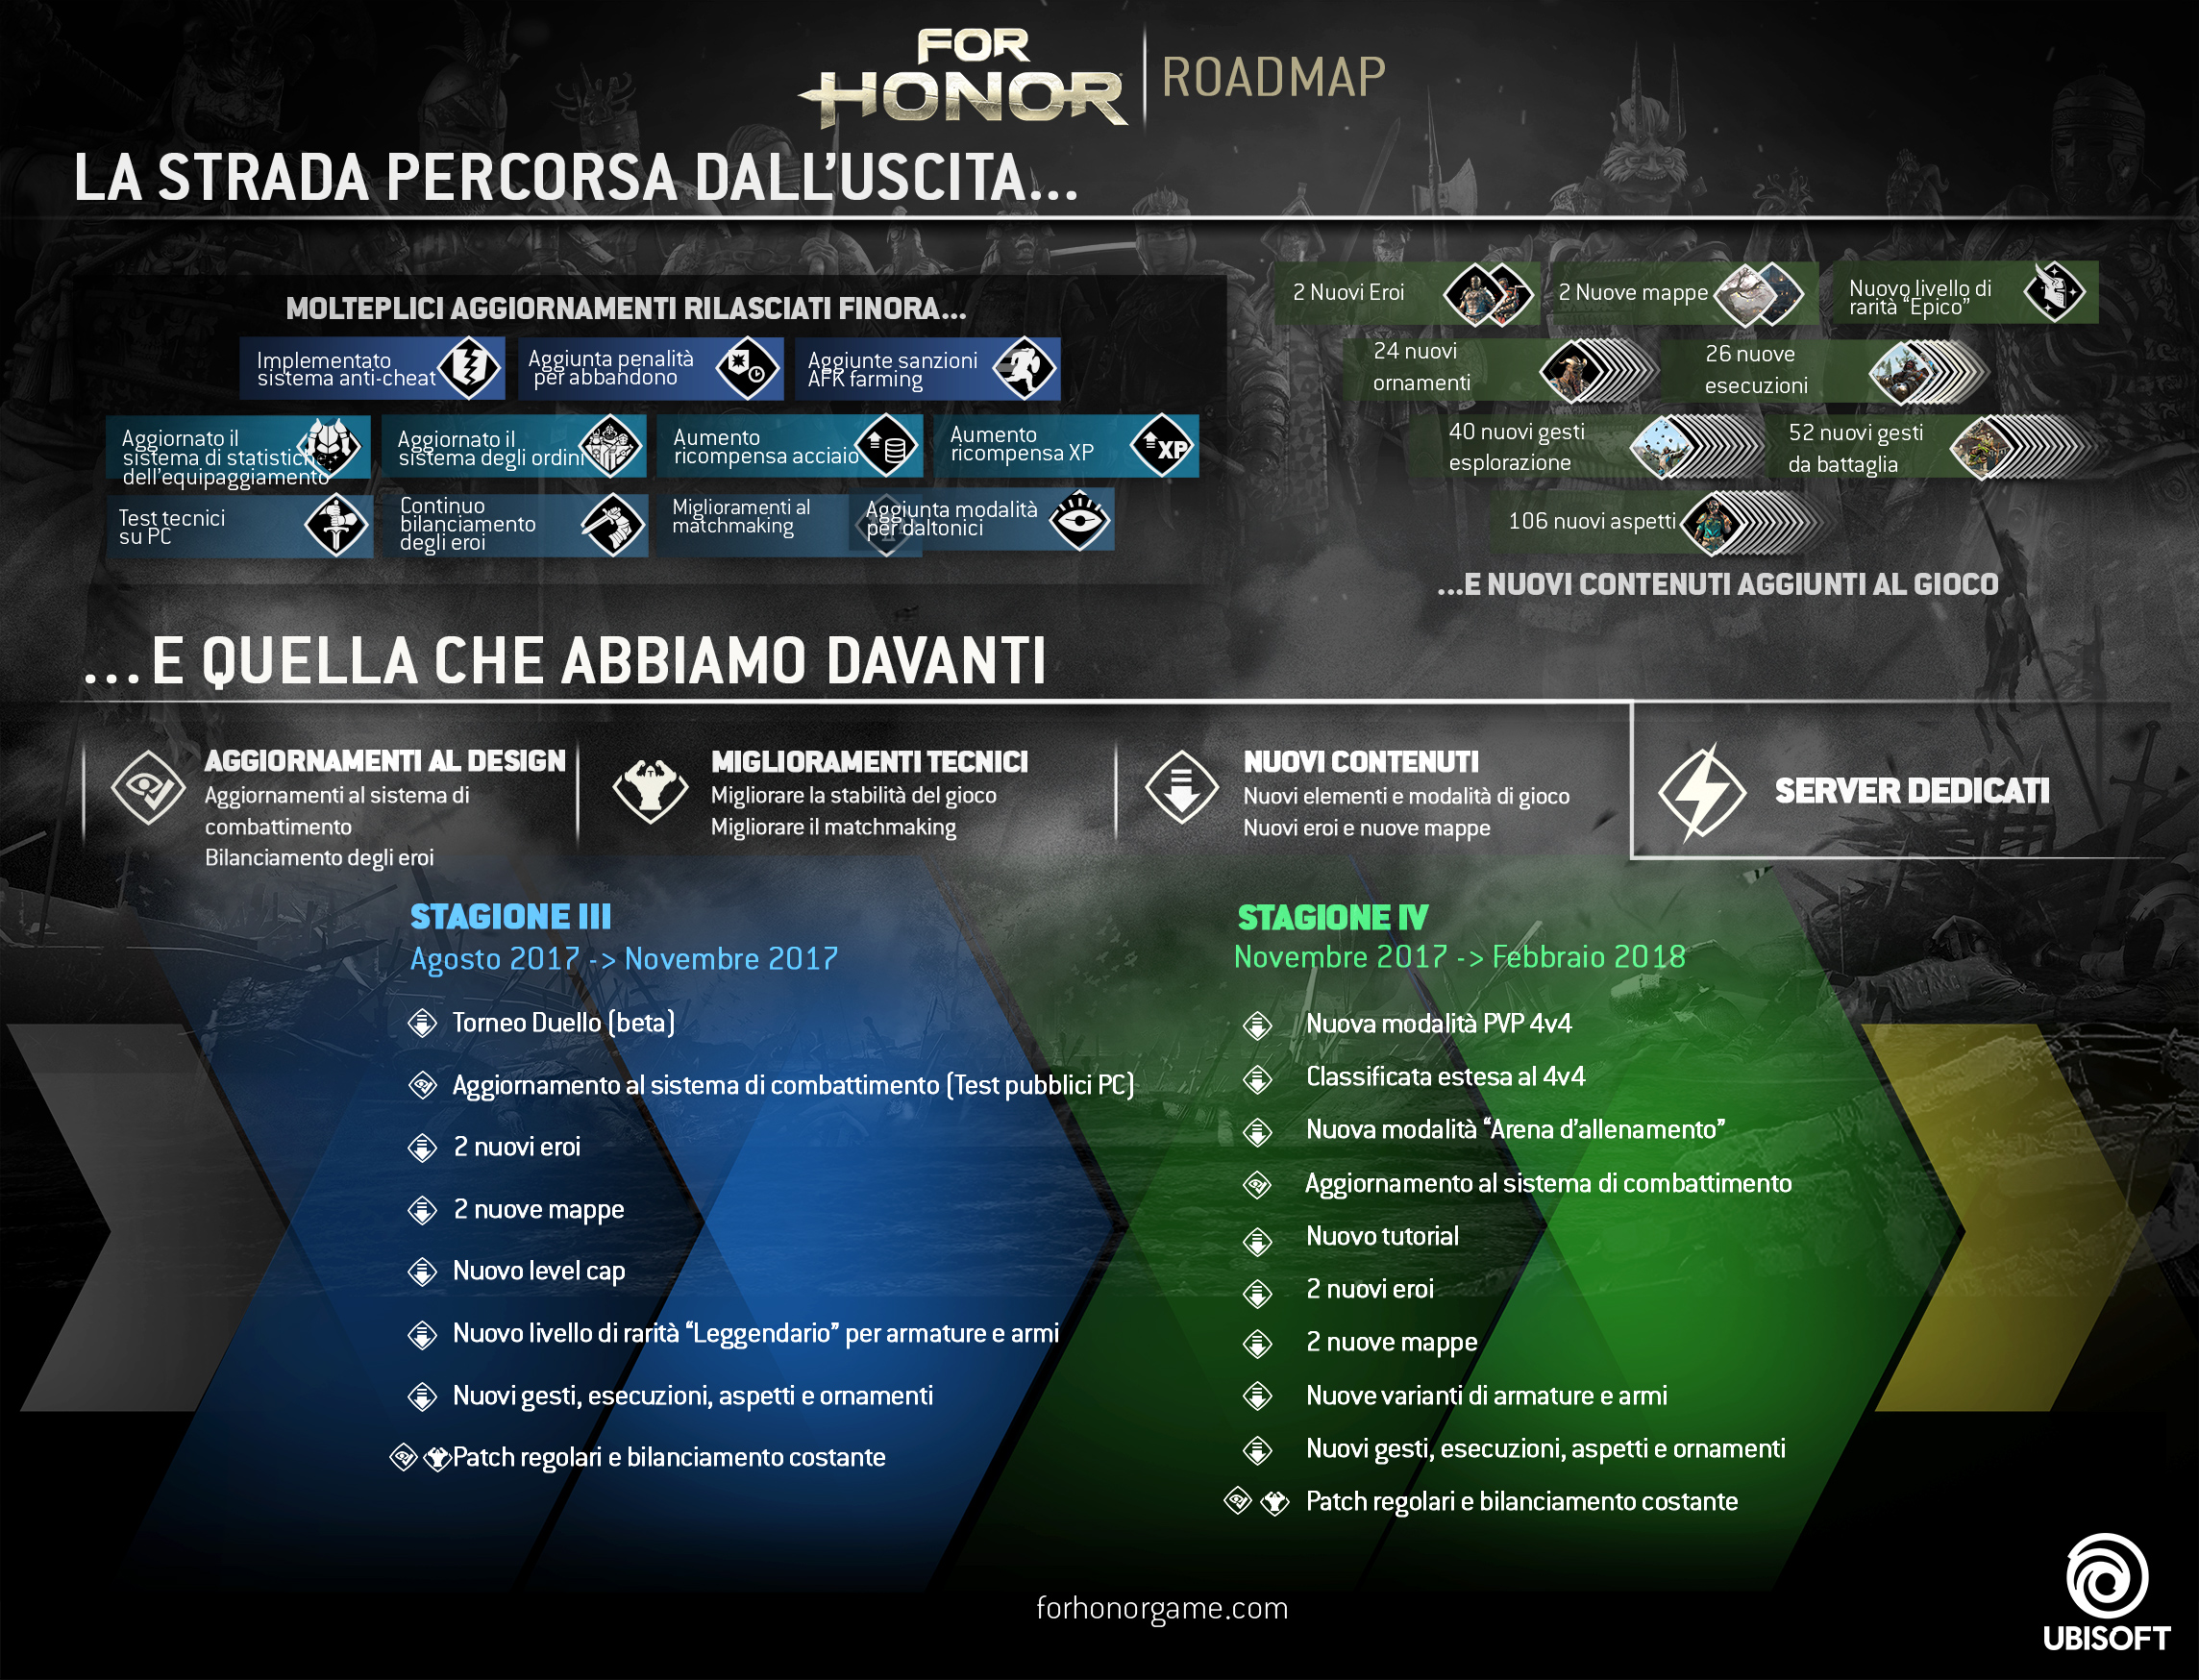 fh_roadmap_ita-1